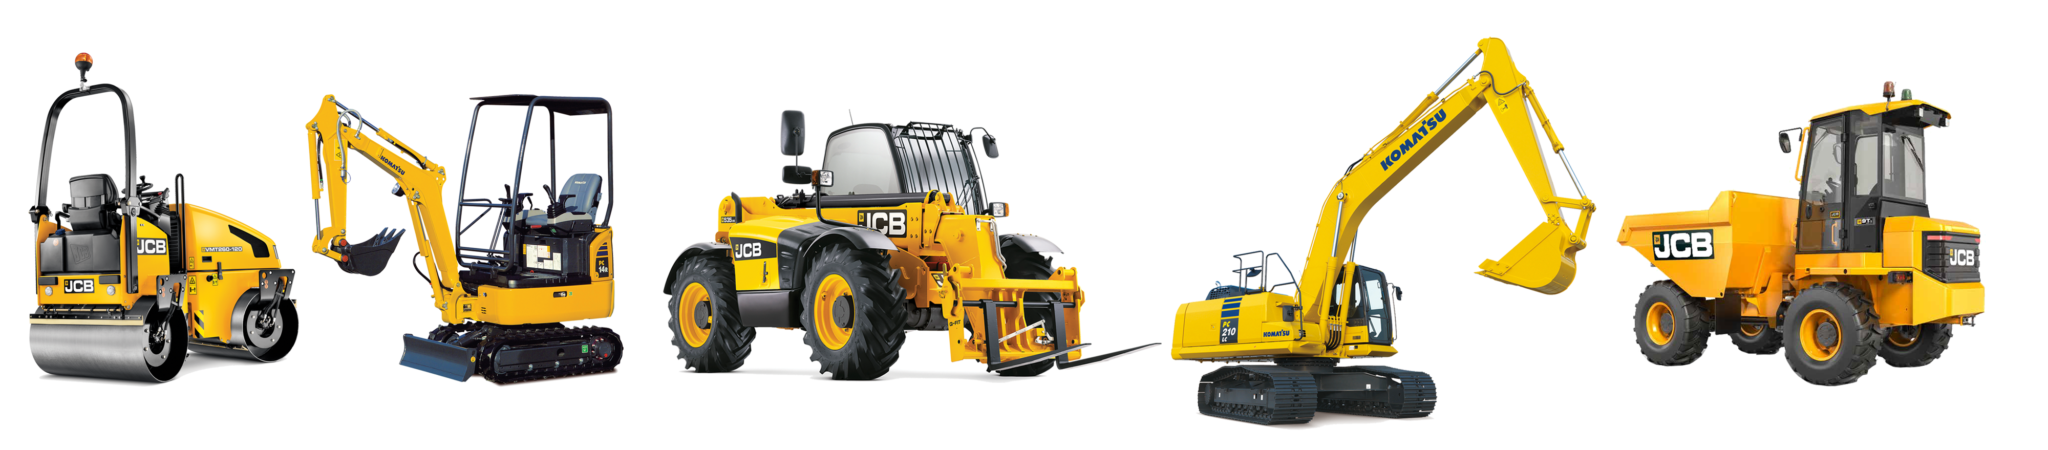 Ridgway supplies plant hire for essential services during coronavirus